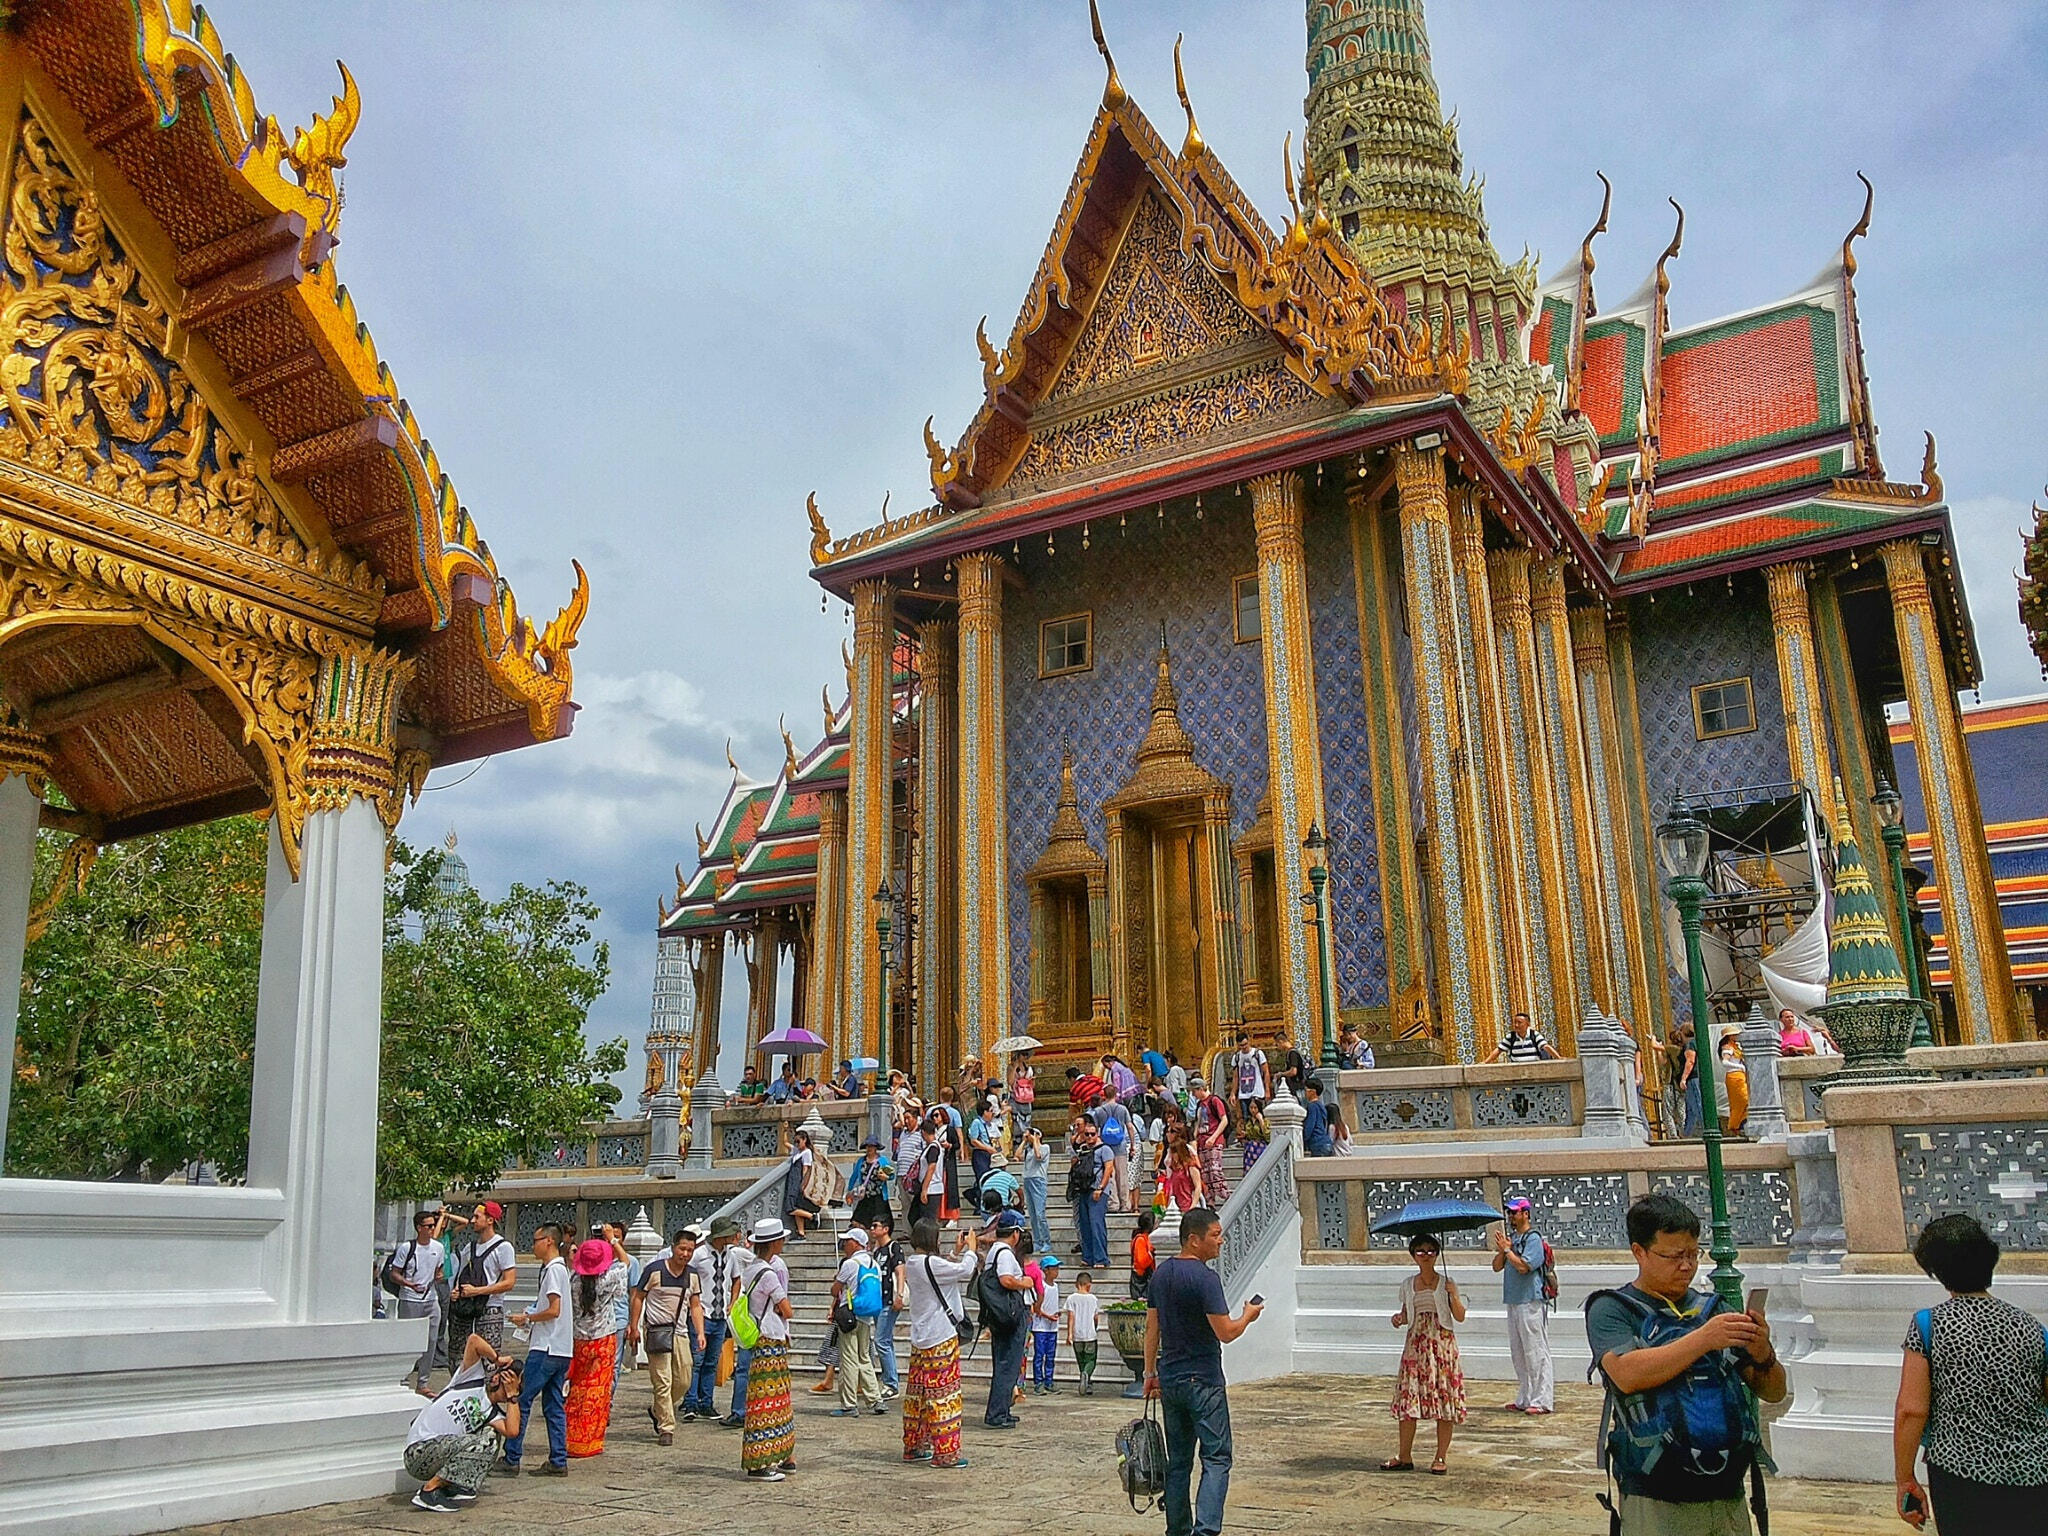 Thailand Tourist Trap #2 - The Grand Palace, Bangkok